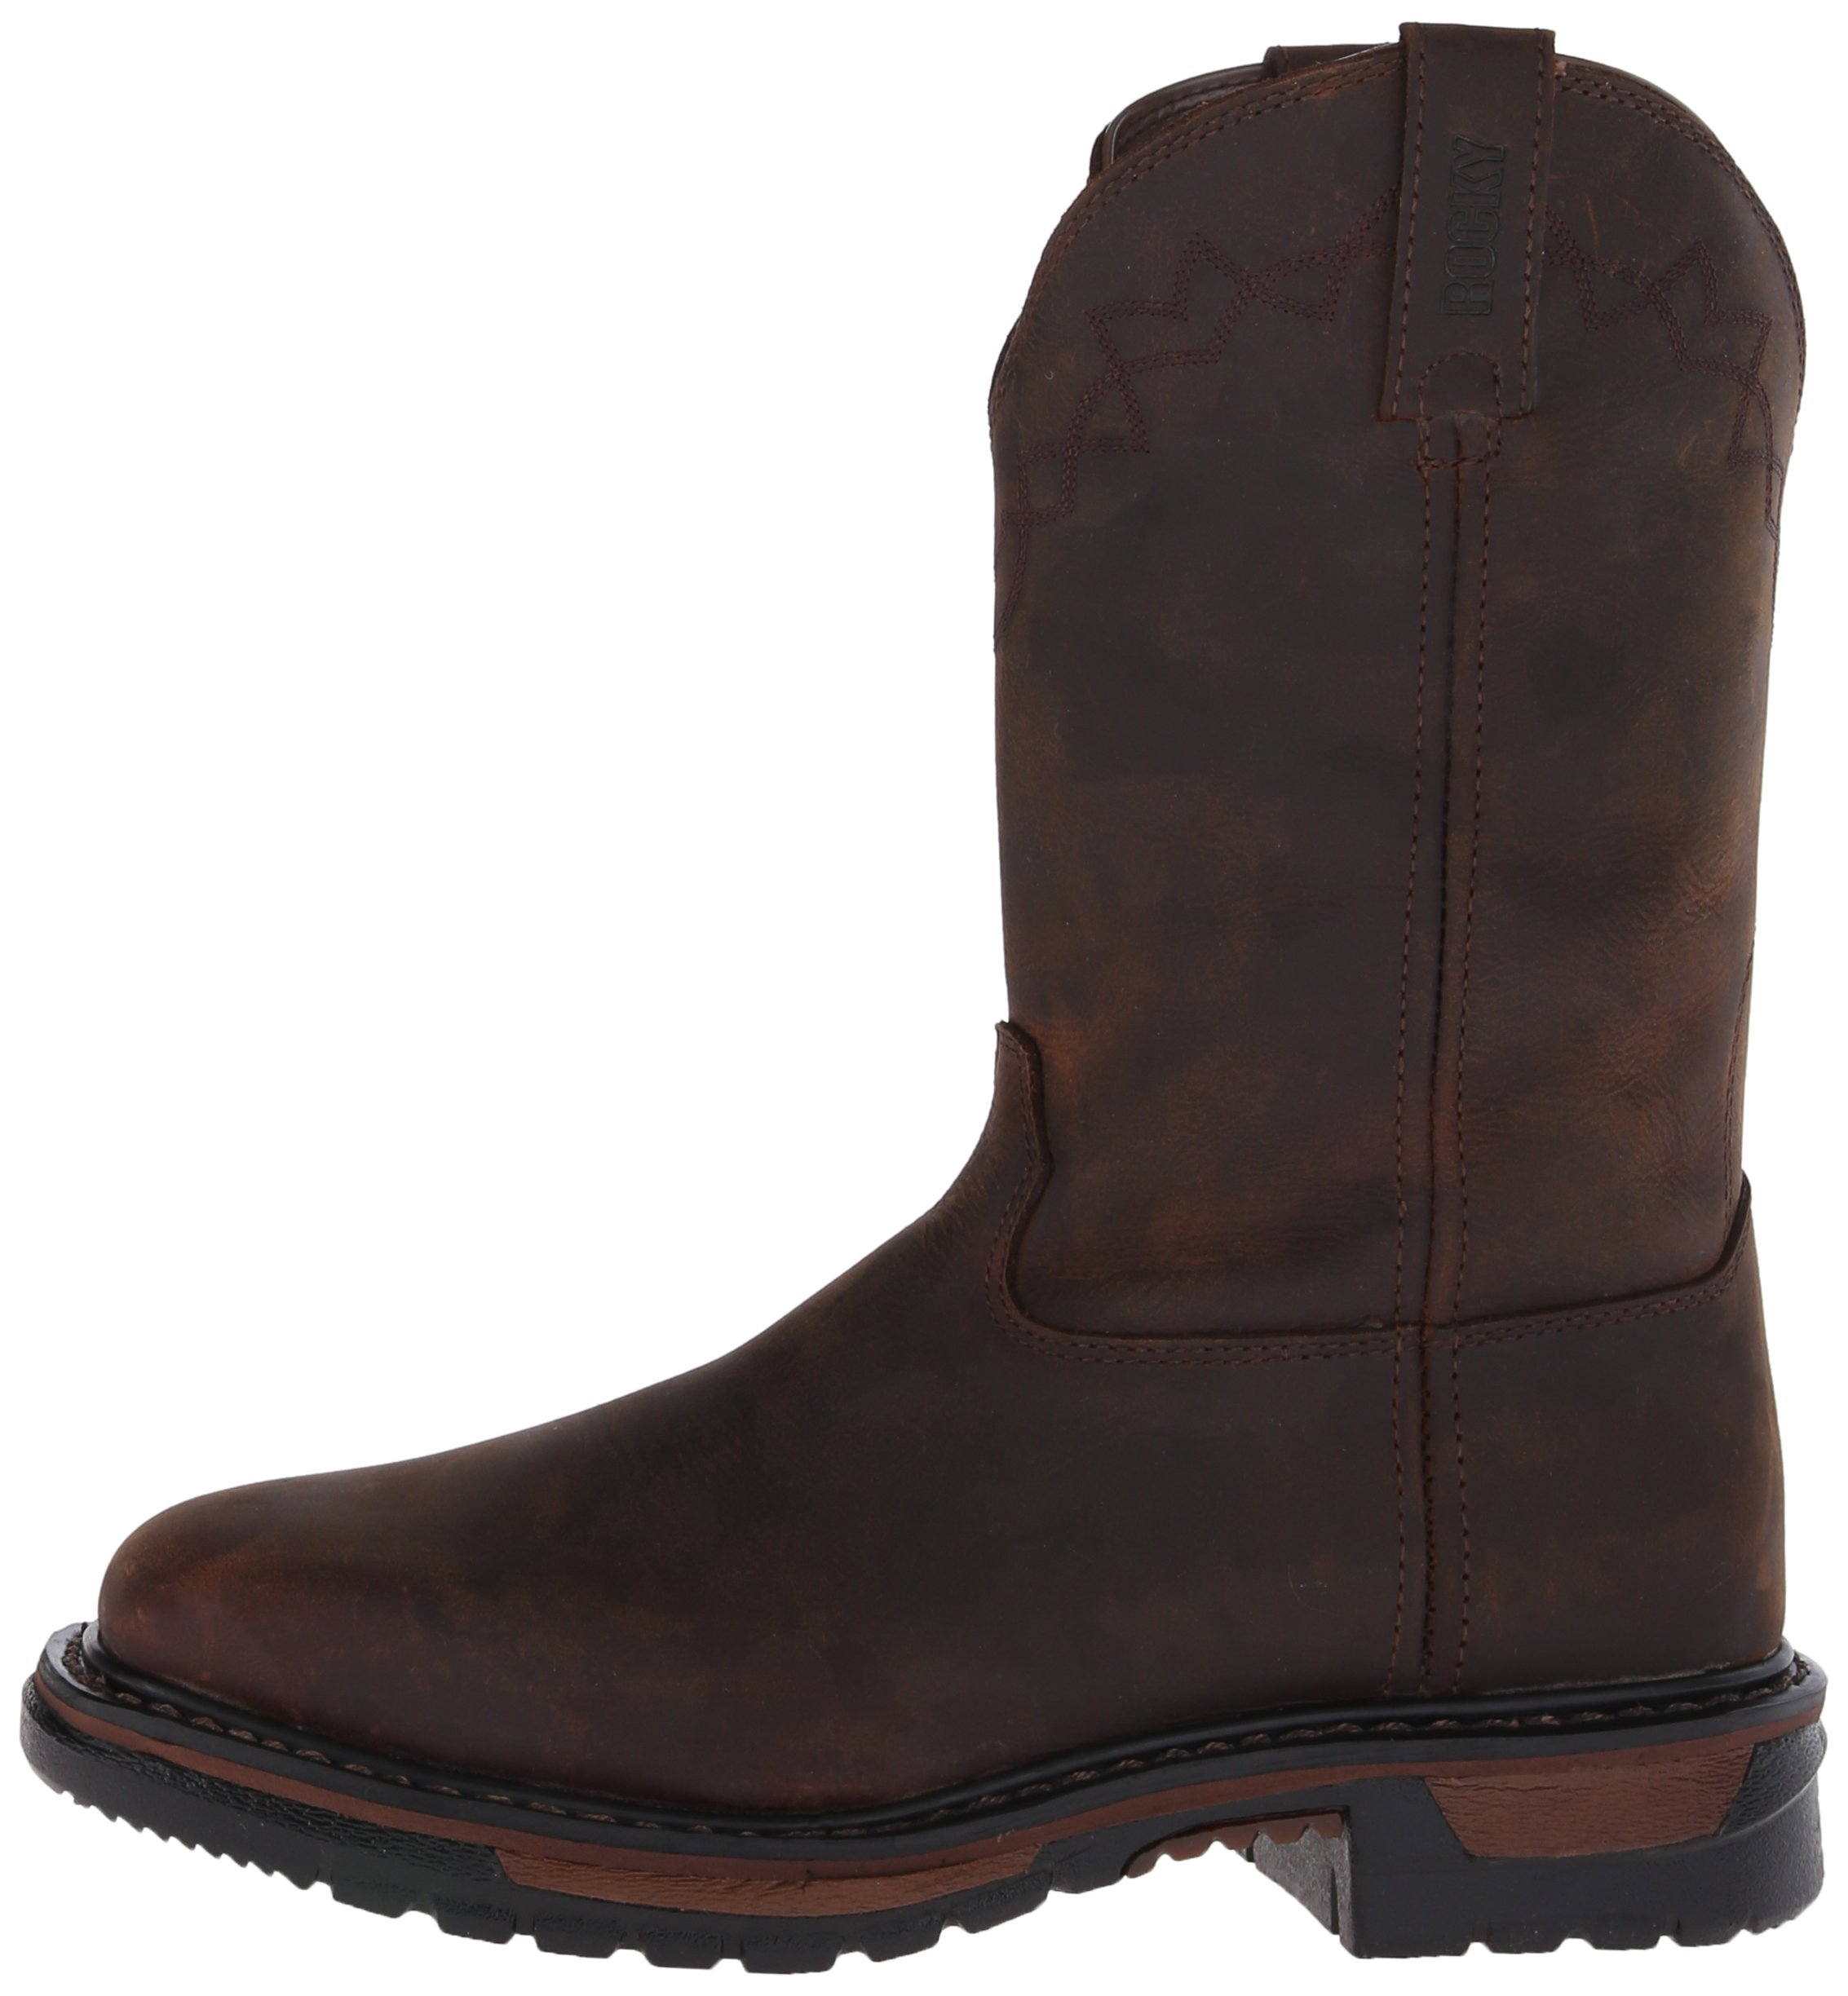 Rocky Men's RKW0117 Boot, Dark Brown, 10 M US by Rocky (Image #5)